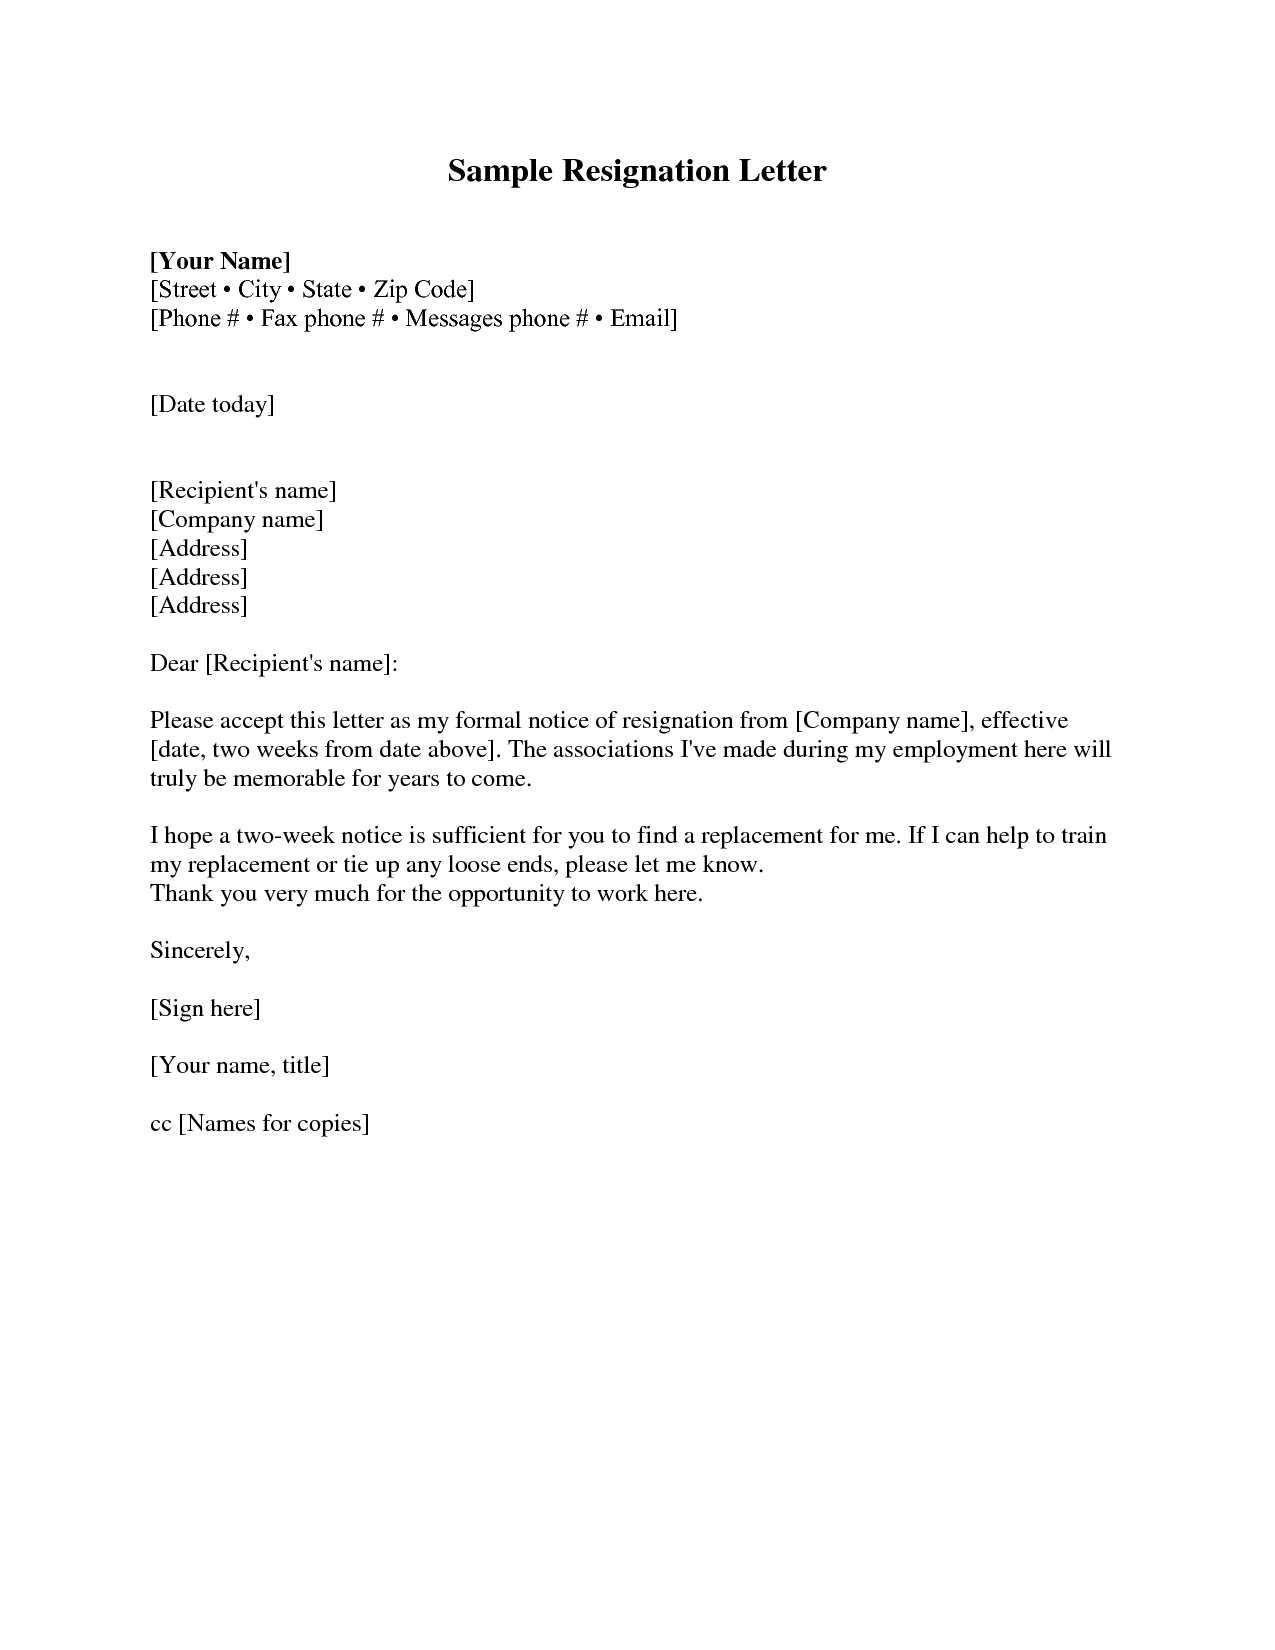 resignation letter sample weeks notice com yup resignation letter sample 2 weeks notice 2 com